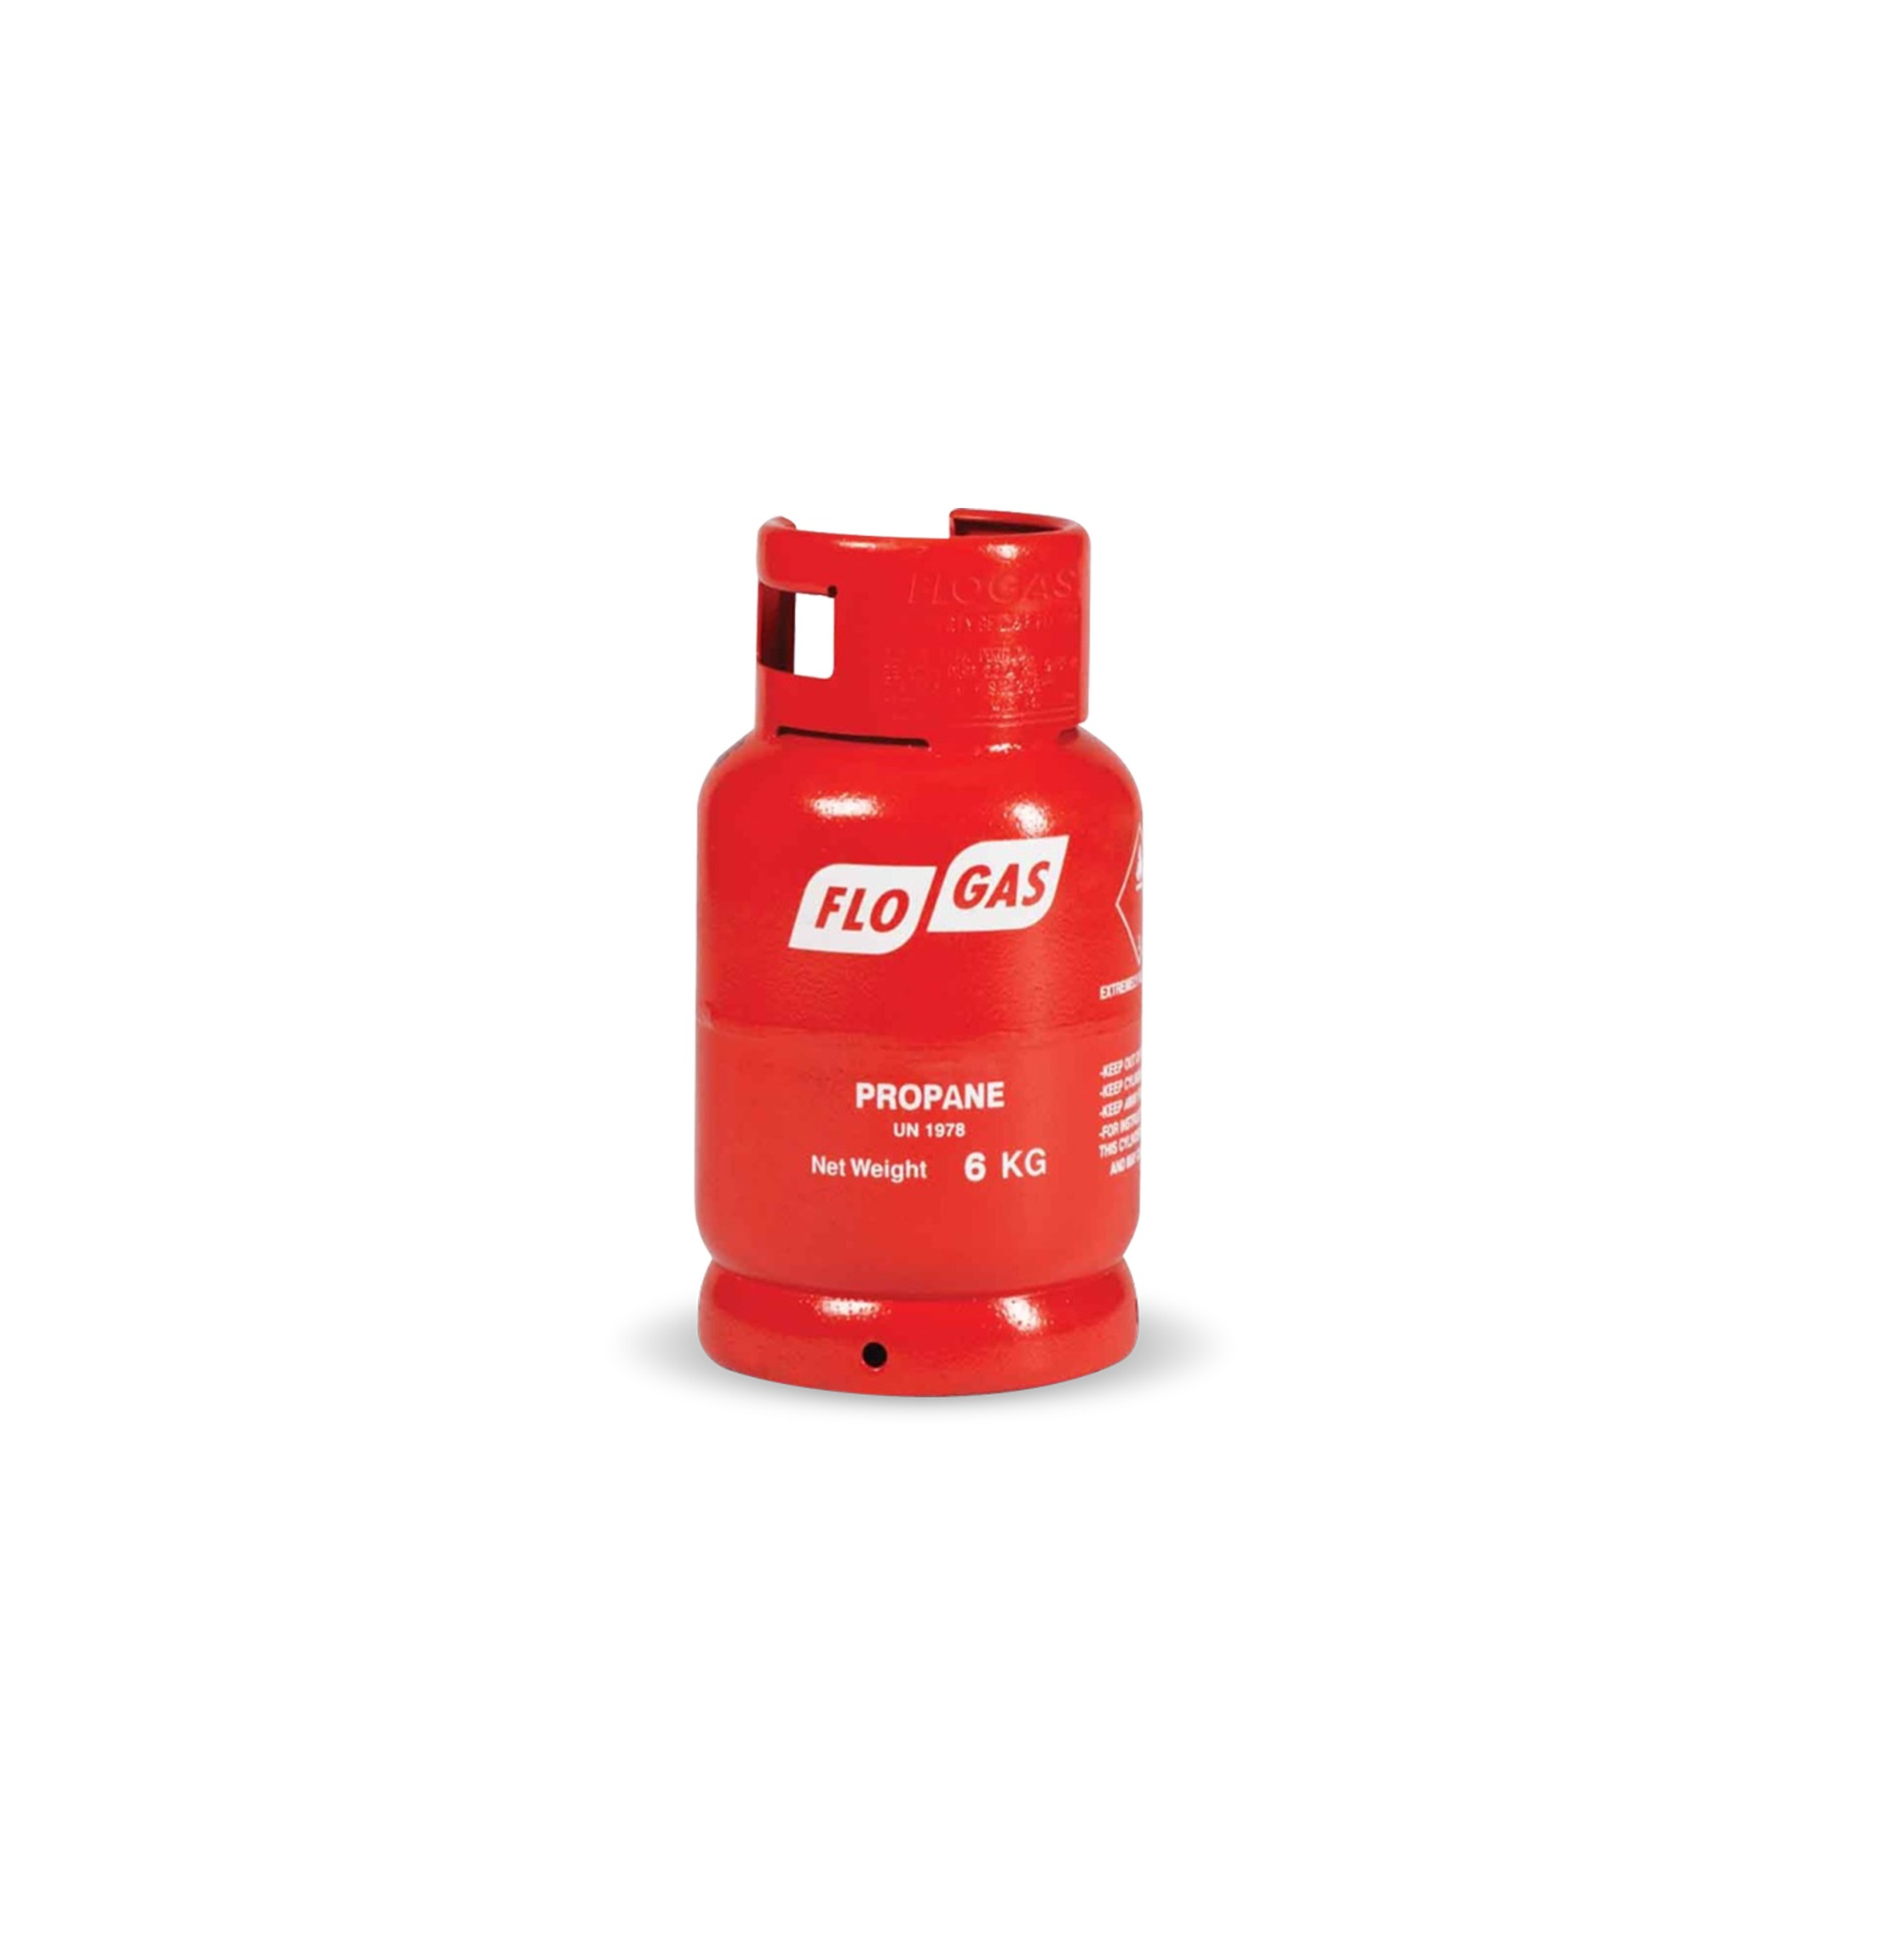 FloGas 6kg Propane Gas Bottle